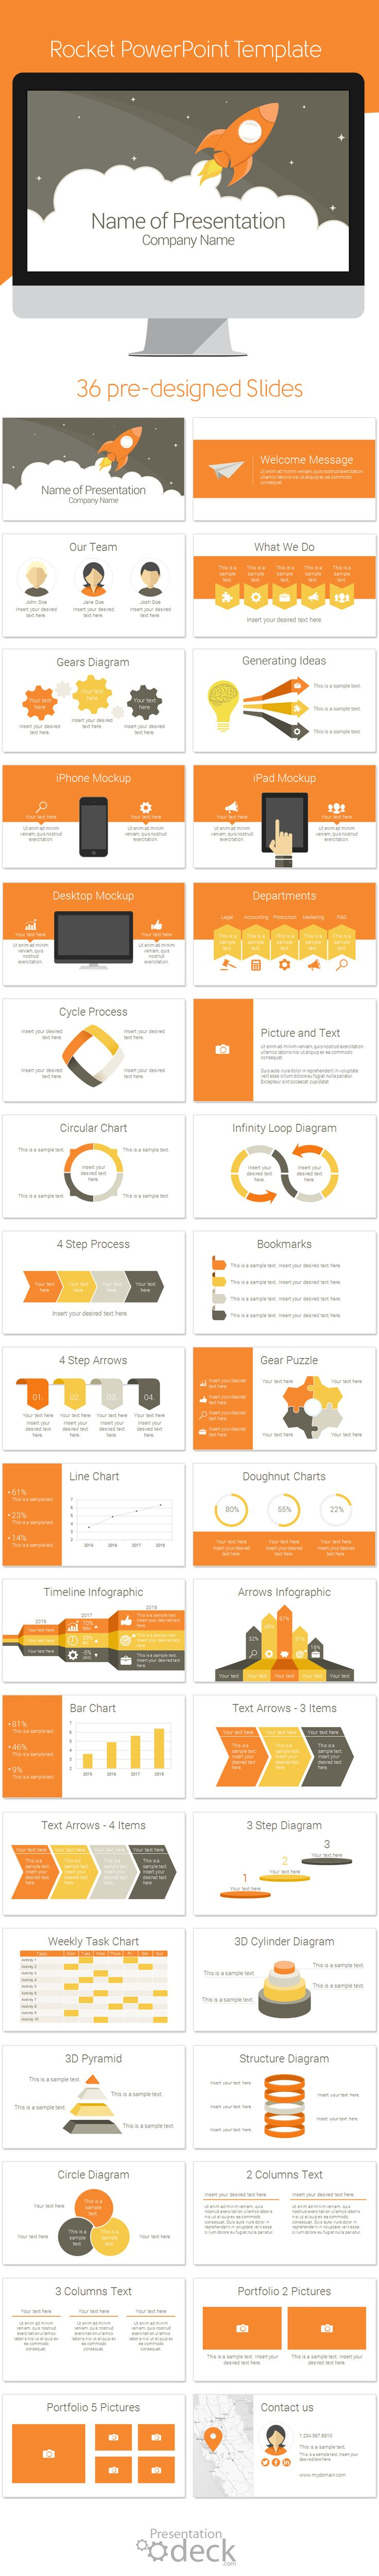 best images about presentation design powerpoint rocket powerpoint template